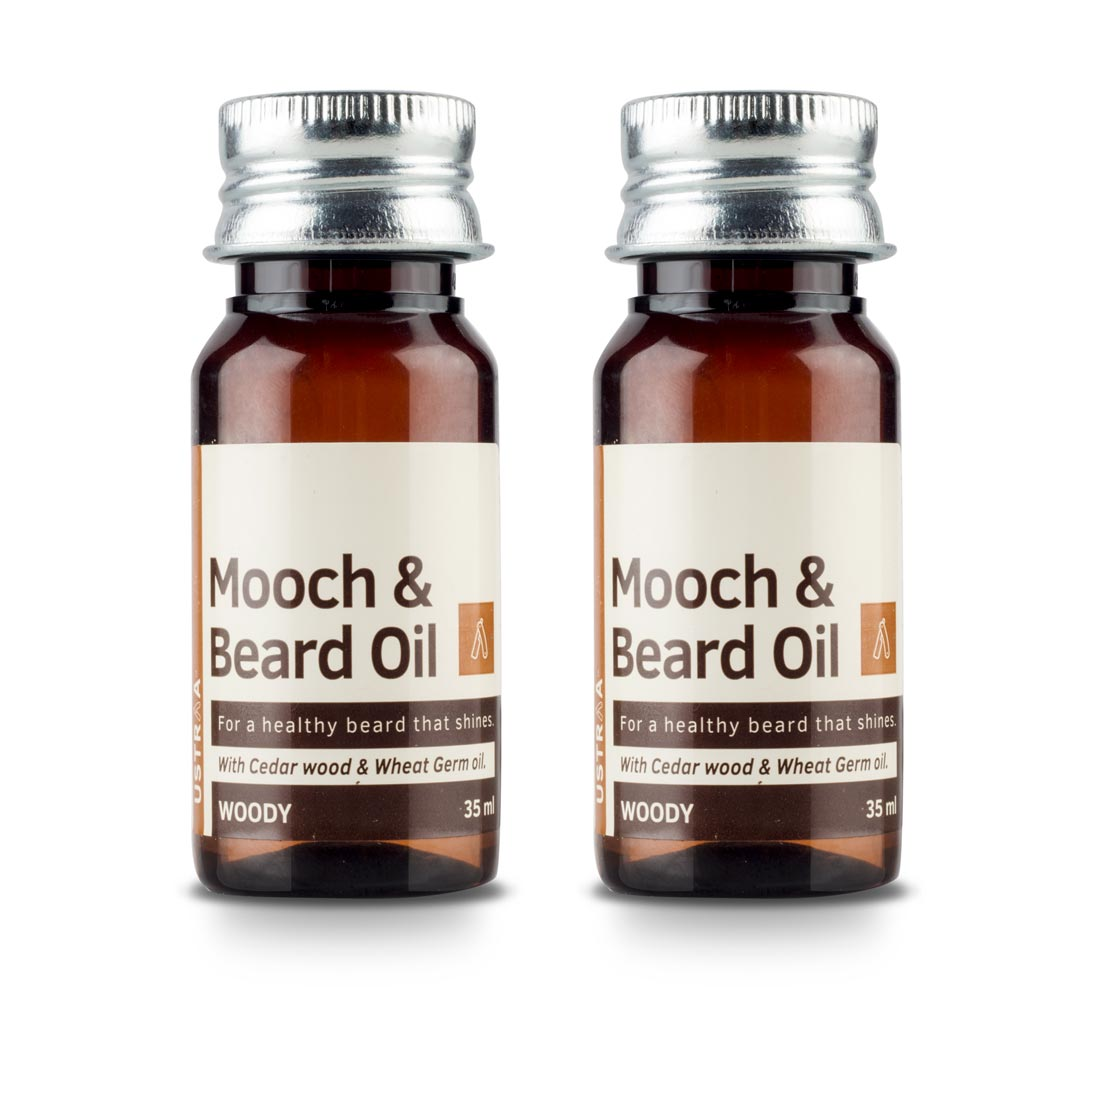 Beard & Mooch Oil (Woody) - Set of 2